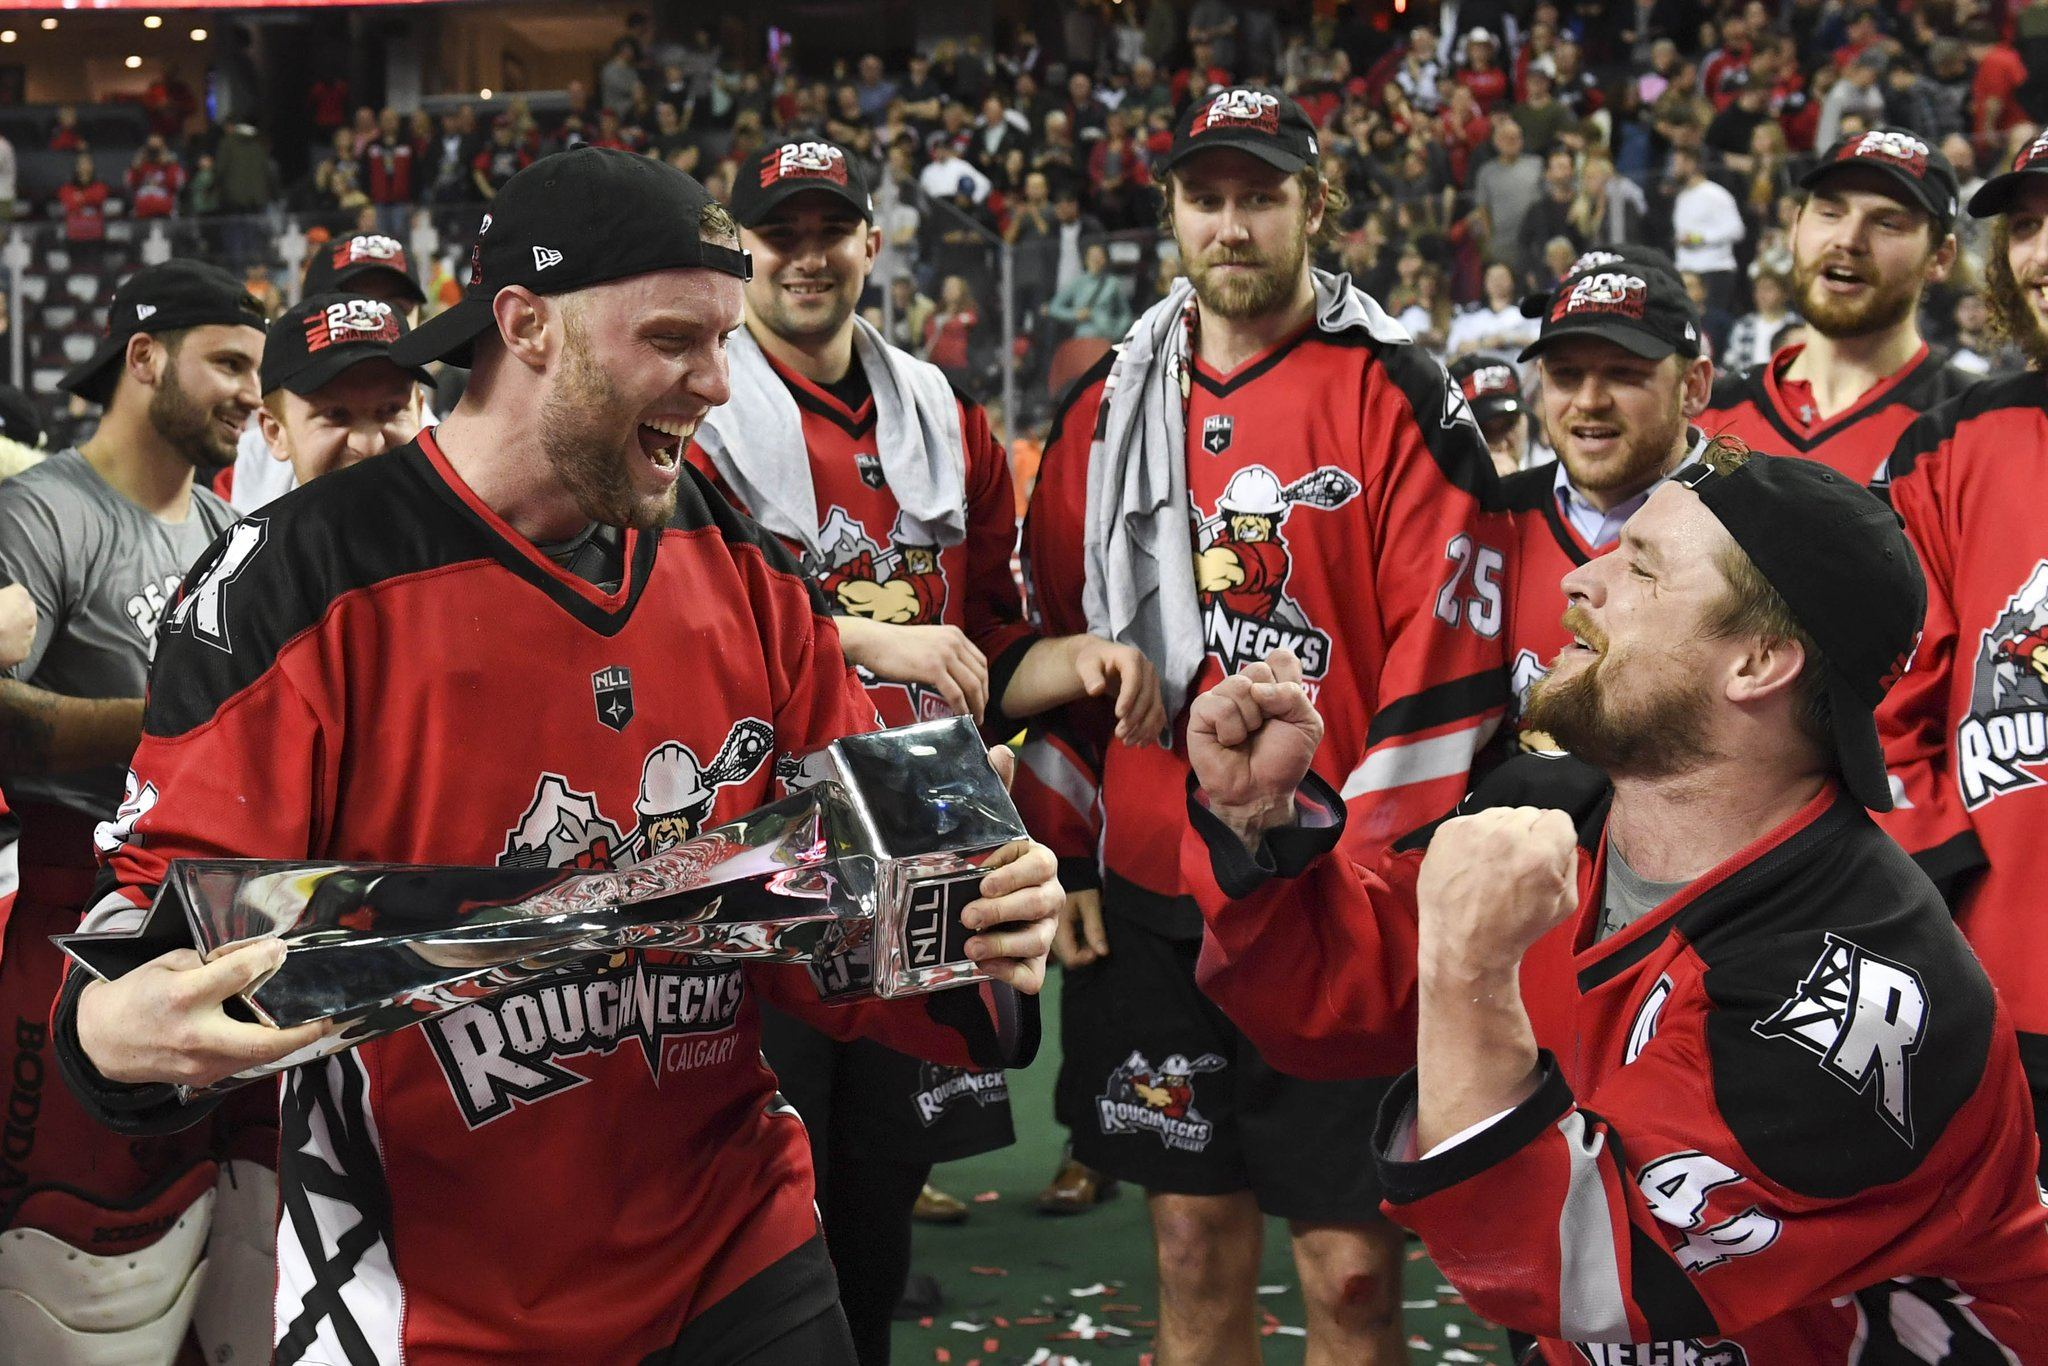 Billionaire major leagues sports owners flock to indoor lacrosse